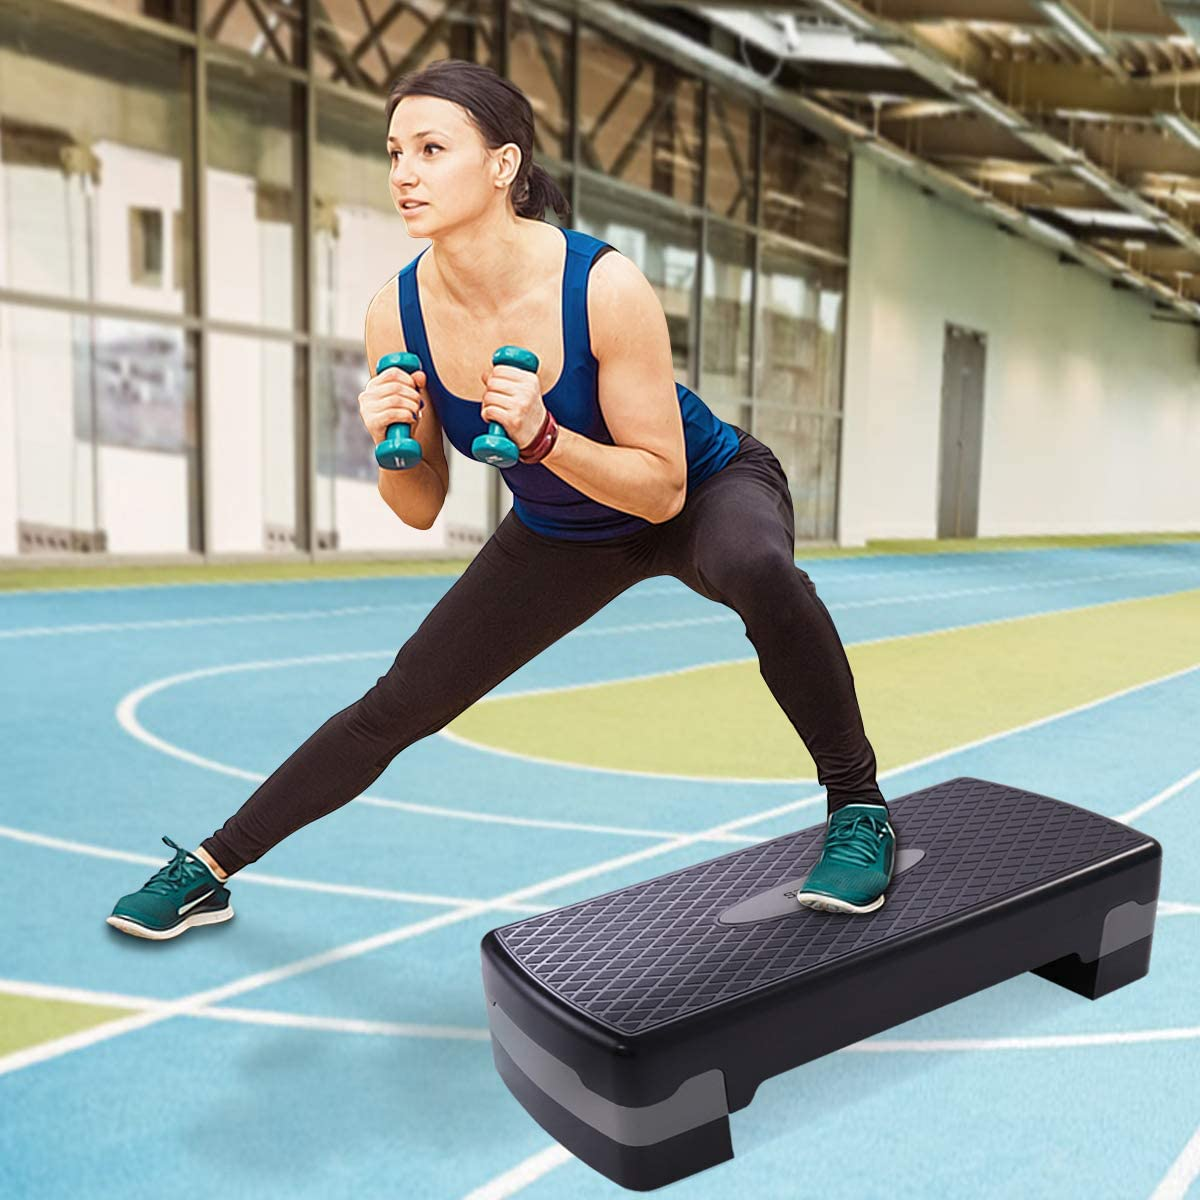 JAXPETY New 27 Fitness Aerobic Step Adjust 4 – 6 Exercise Stepper w Risers Home Gym